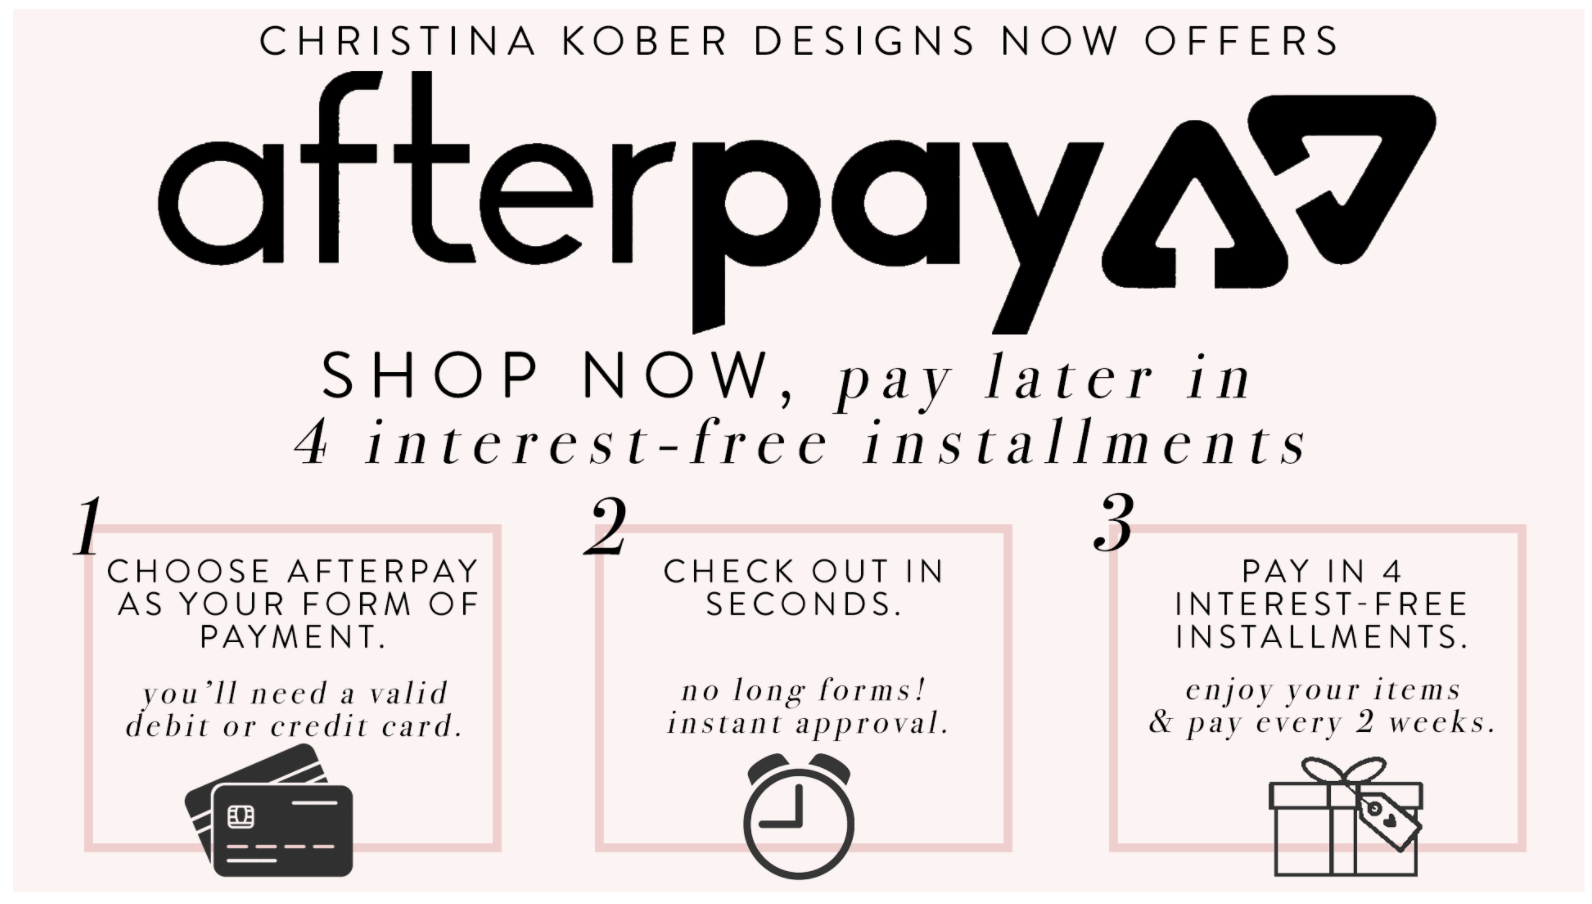 Christina Kober Designs Afterpay